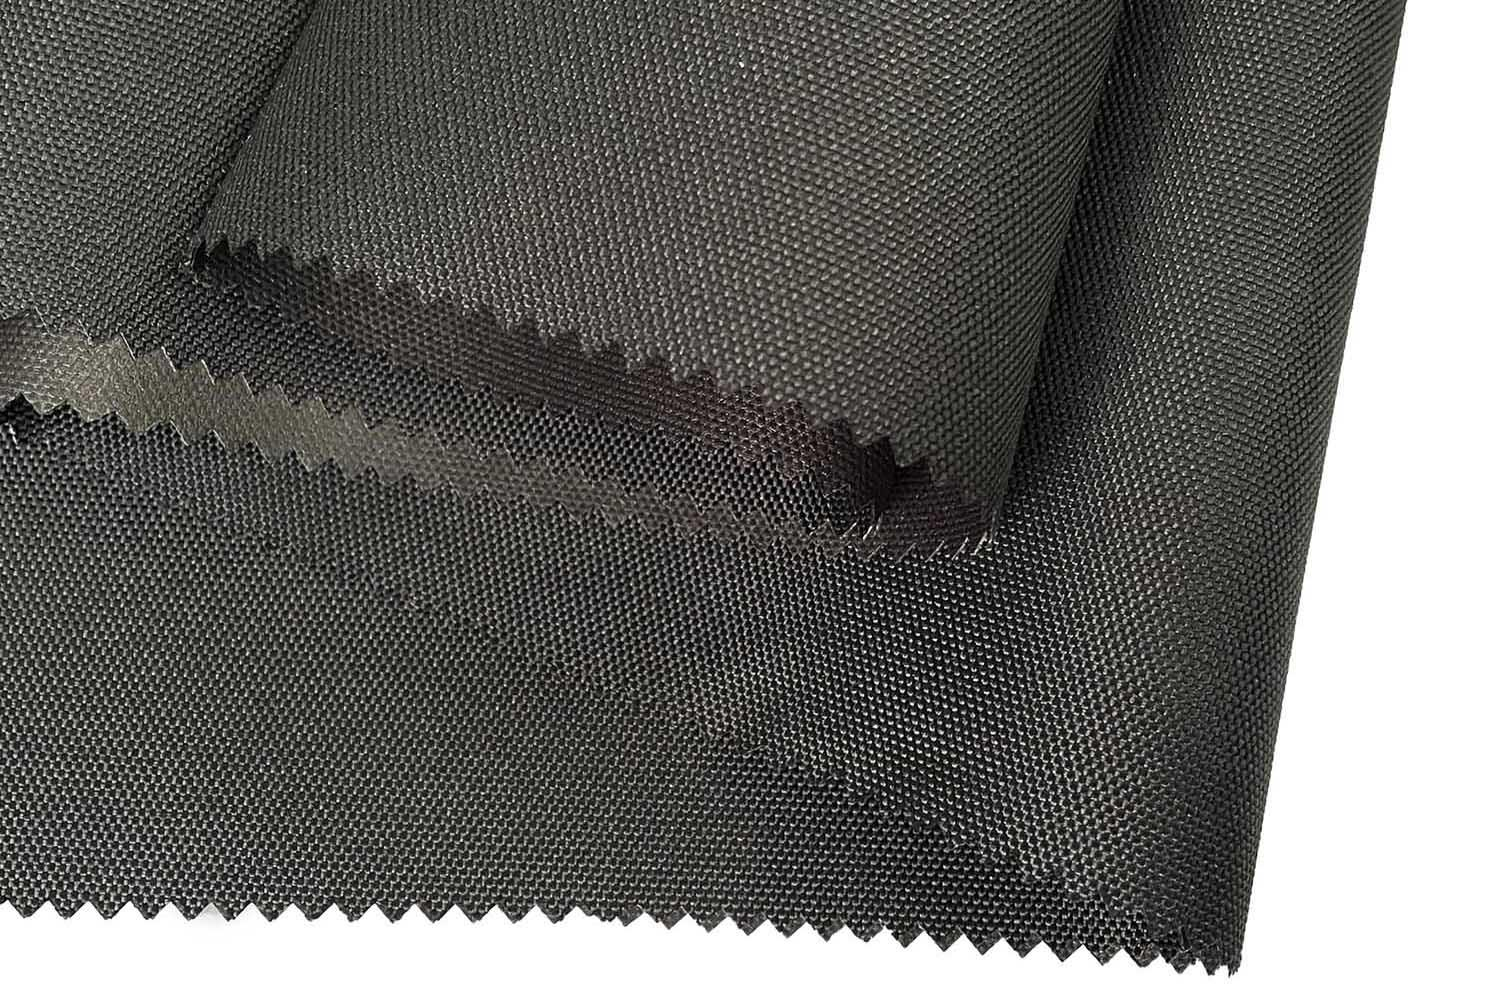 900D Oxford Fabric With 2000MM PU Coated